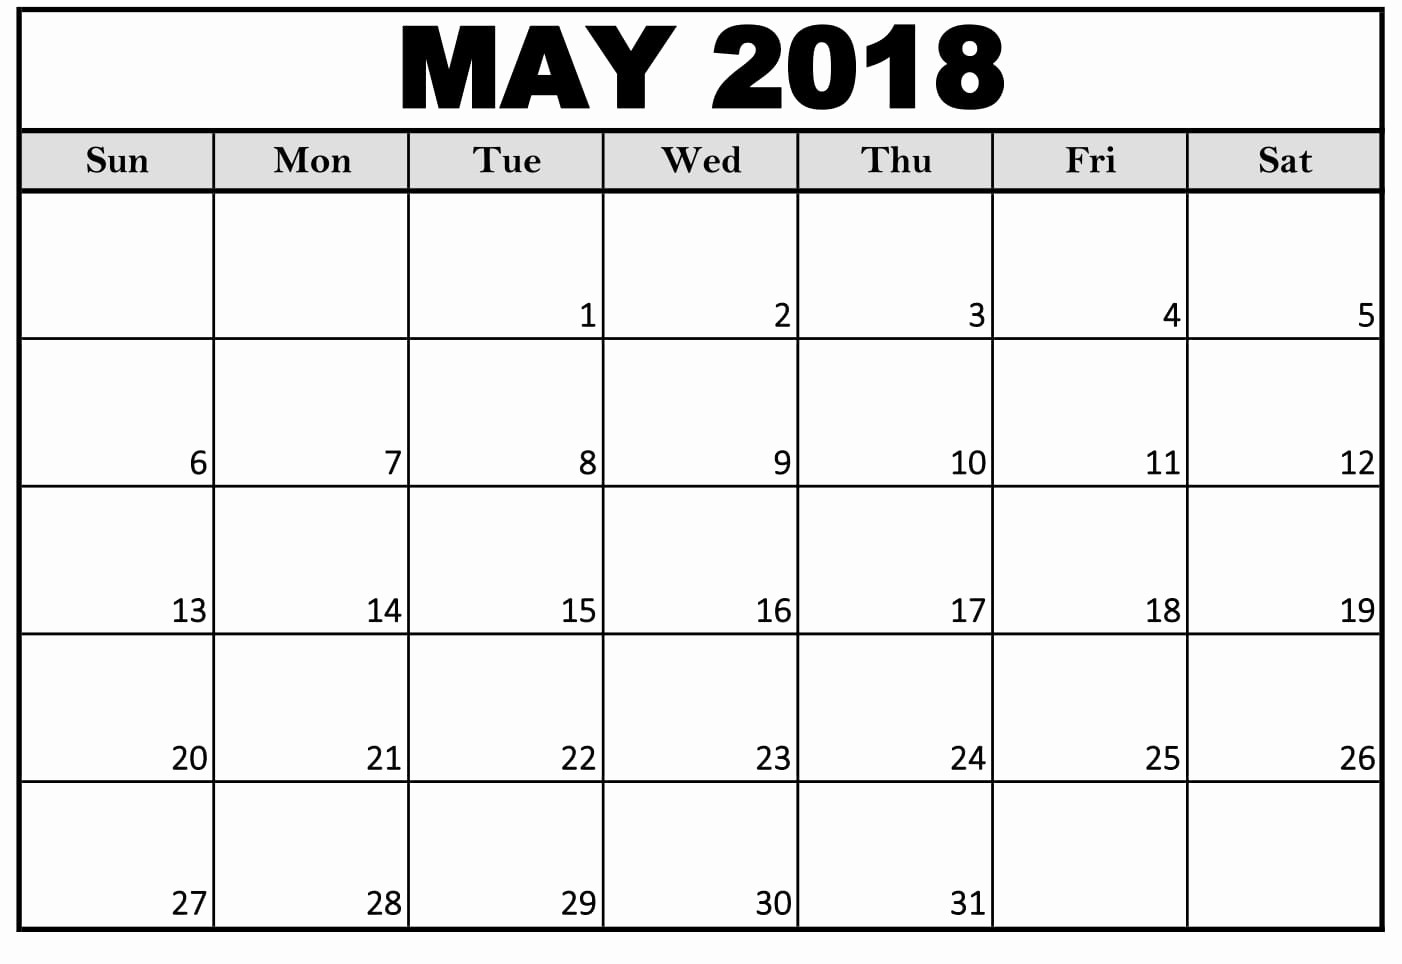 Free May 2018 Calendar Template Inspirational Free 5 May 2018 Calendar Printable Template Pdf source